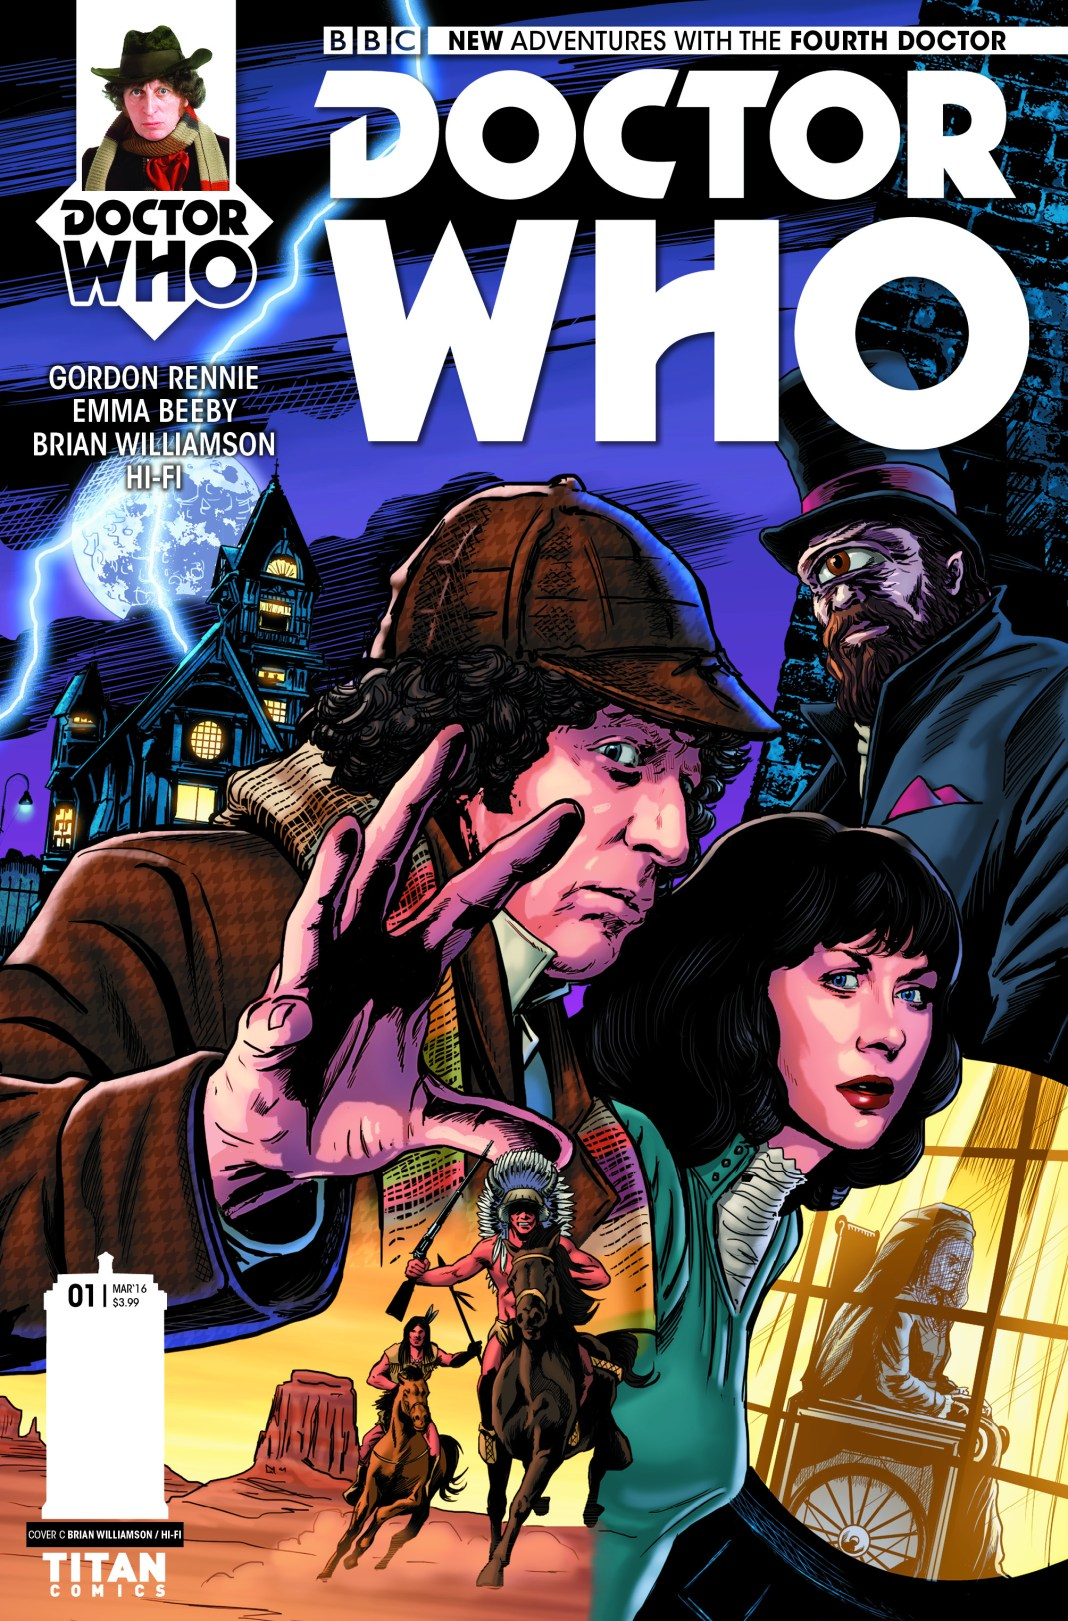 DOCTOR WHO: THE FOURTH DOCTOR #1 - Cover C Brian Williamson (c) Titan Comics